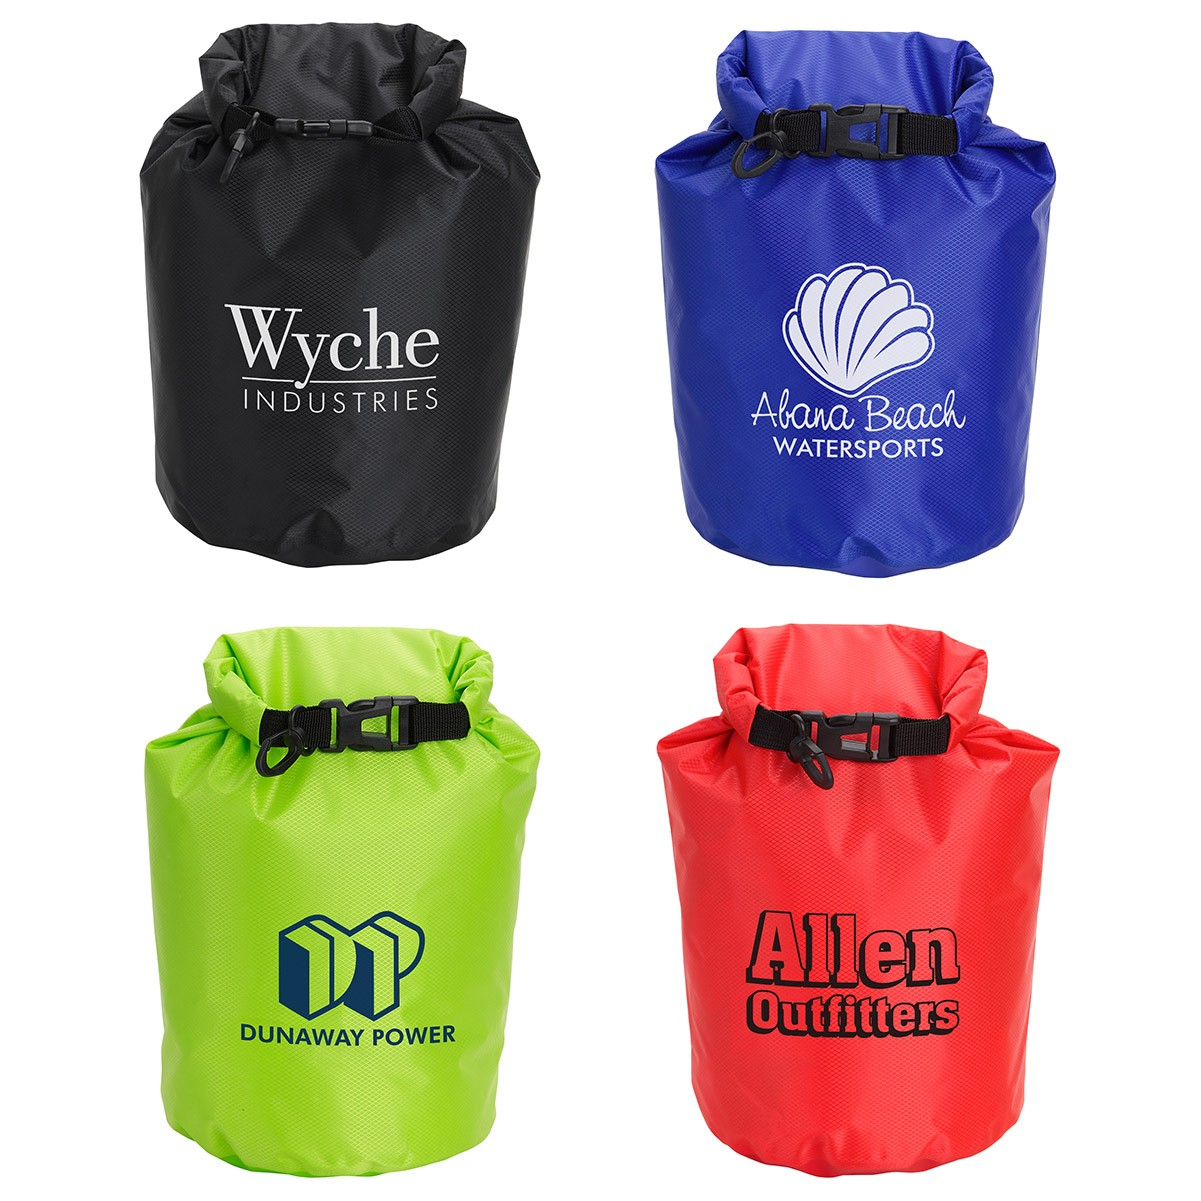 "5 Liter Waterproof Gear Bag  Constructed from 210T polyester grid cloth, Roll down top of bag and buckle ends together for a waterproof seal, Includes carabineer clip. Choose from 2 sizes. Complies with CPSIA, Prop 65. 10.5"" W x 14.0"" H"